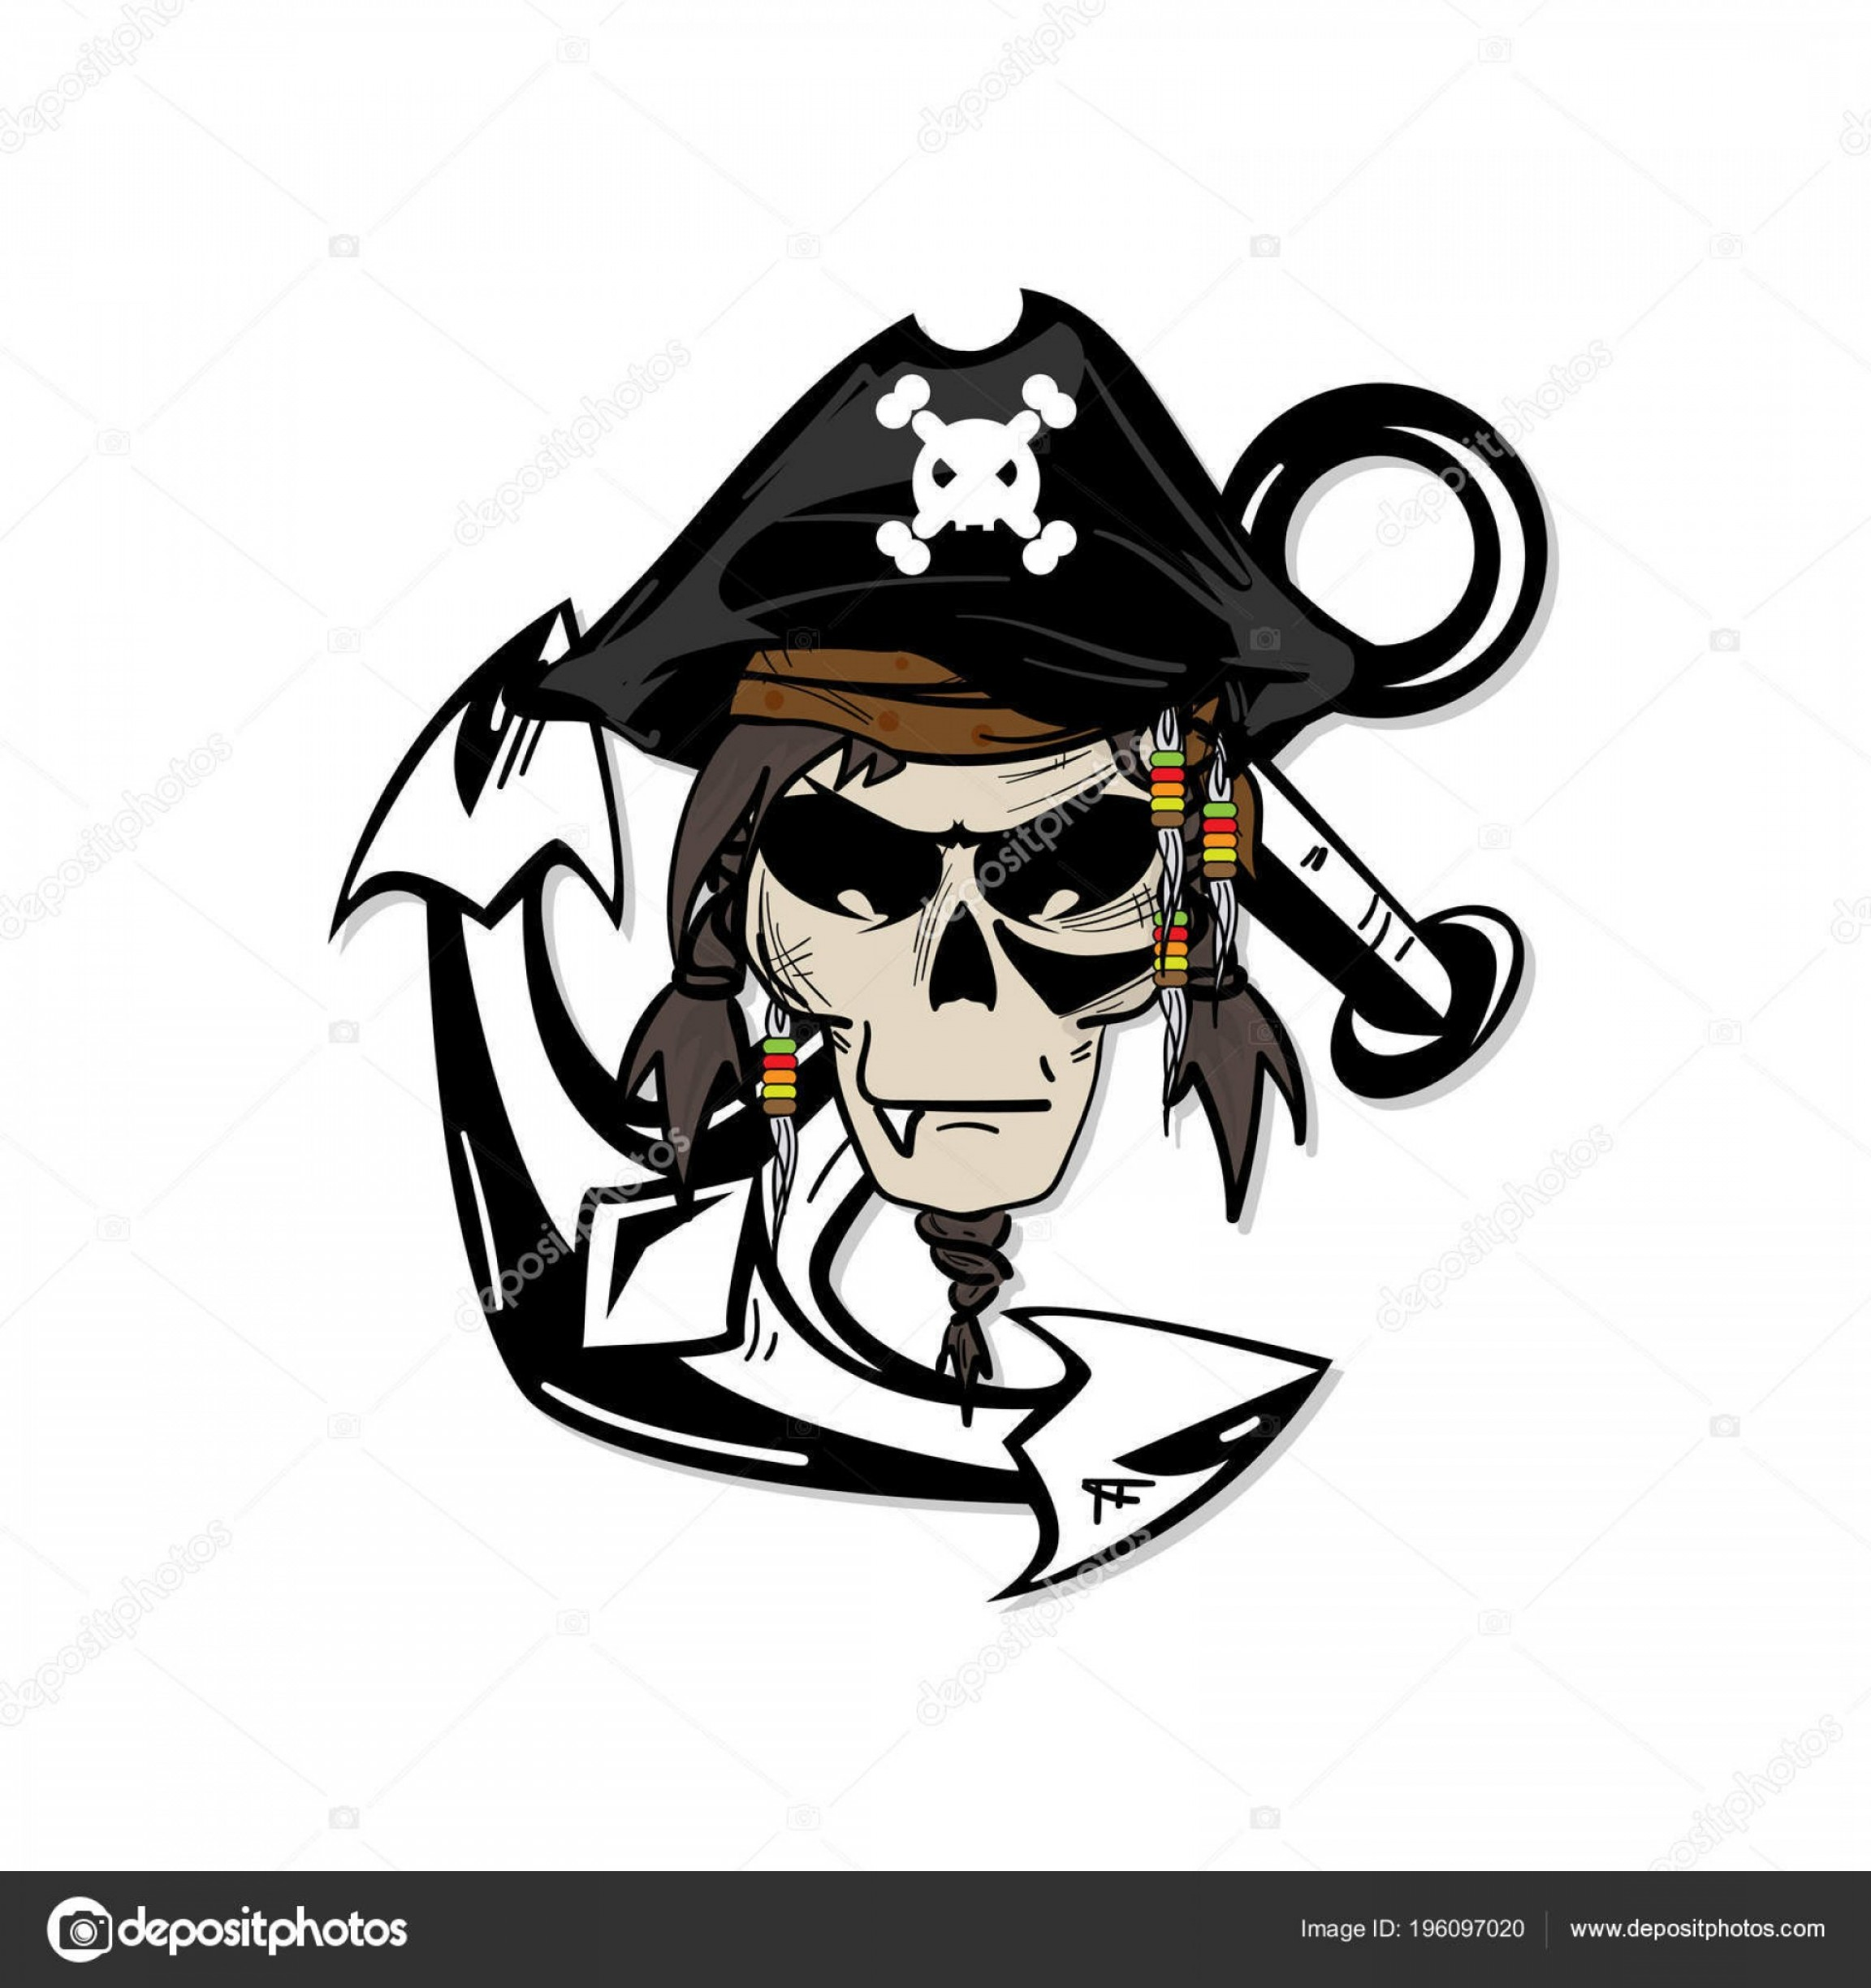 Harley-Davidson Flame Vector Silhouette: Stock Illustration Skull Graphic Pirate Cartoon Character